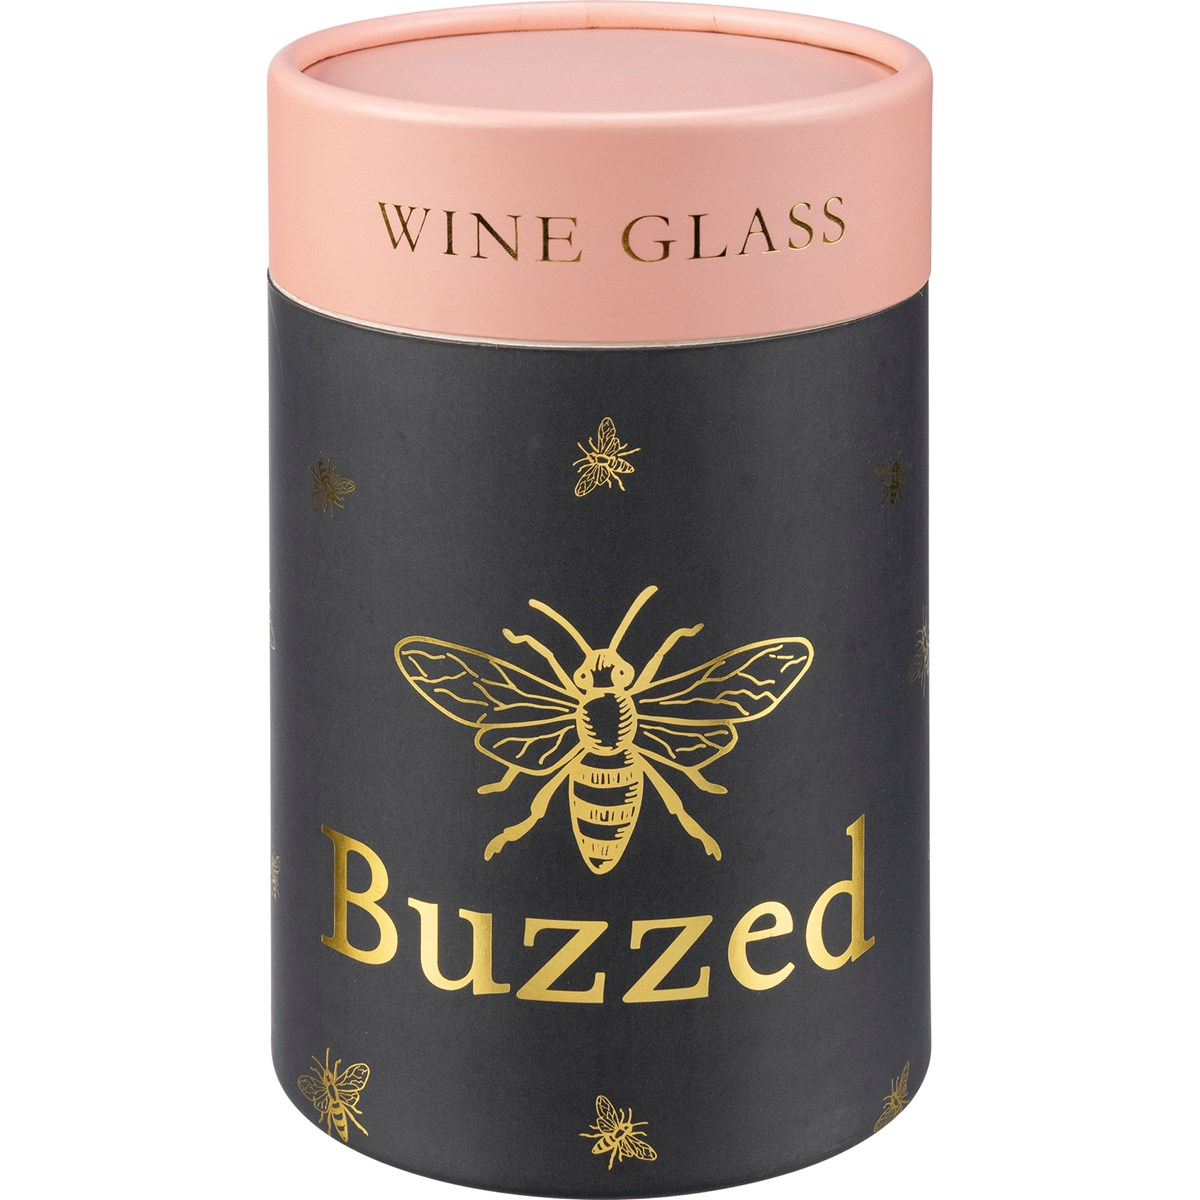 "Wine Glass - Buzzed - 15 oz., Box: 4"" Diameter x 6"" - Glass"